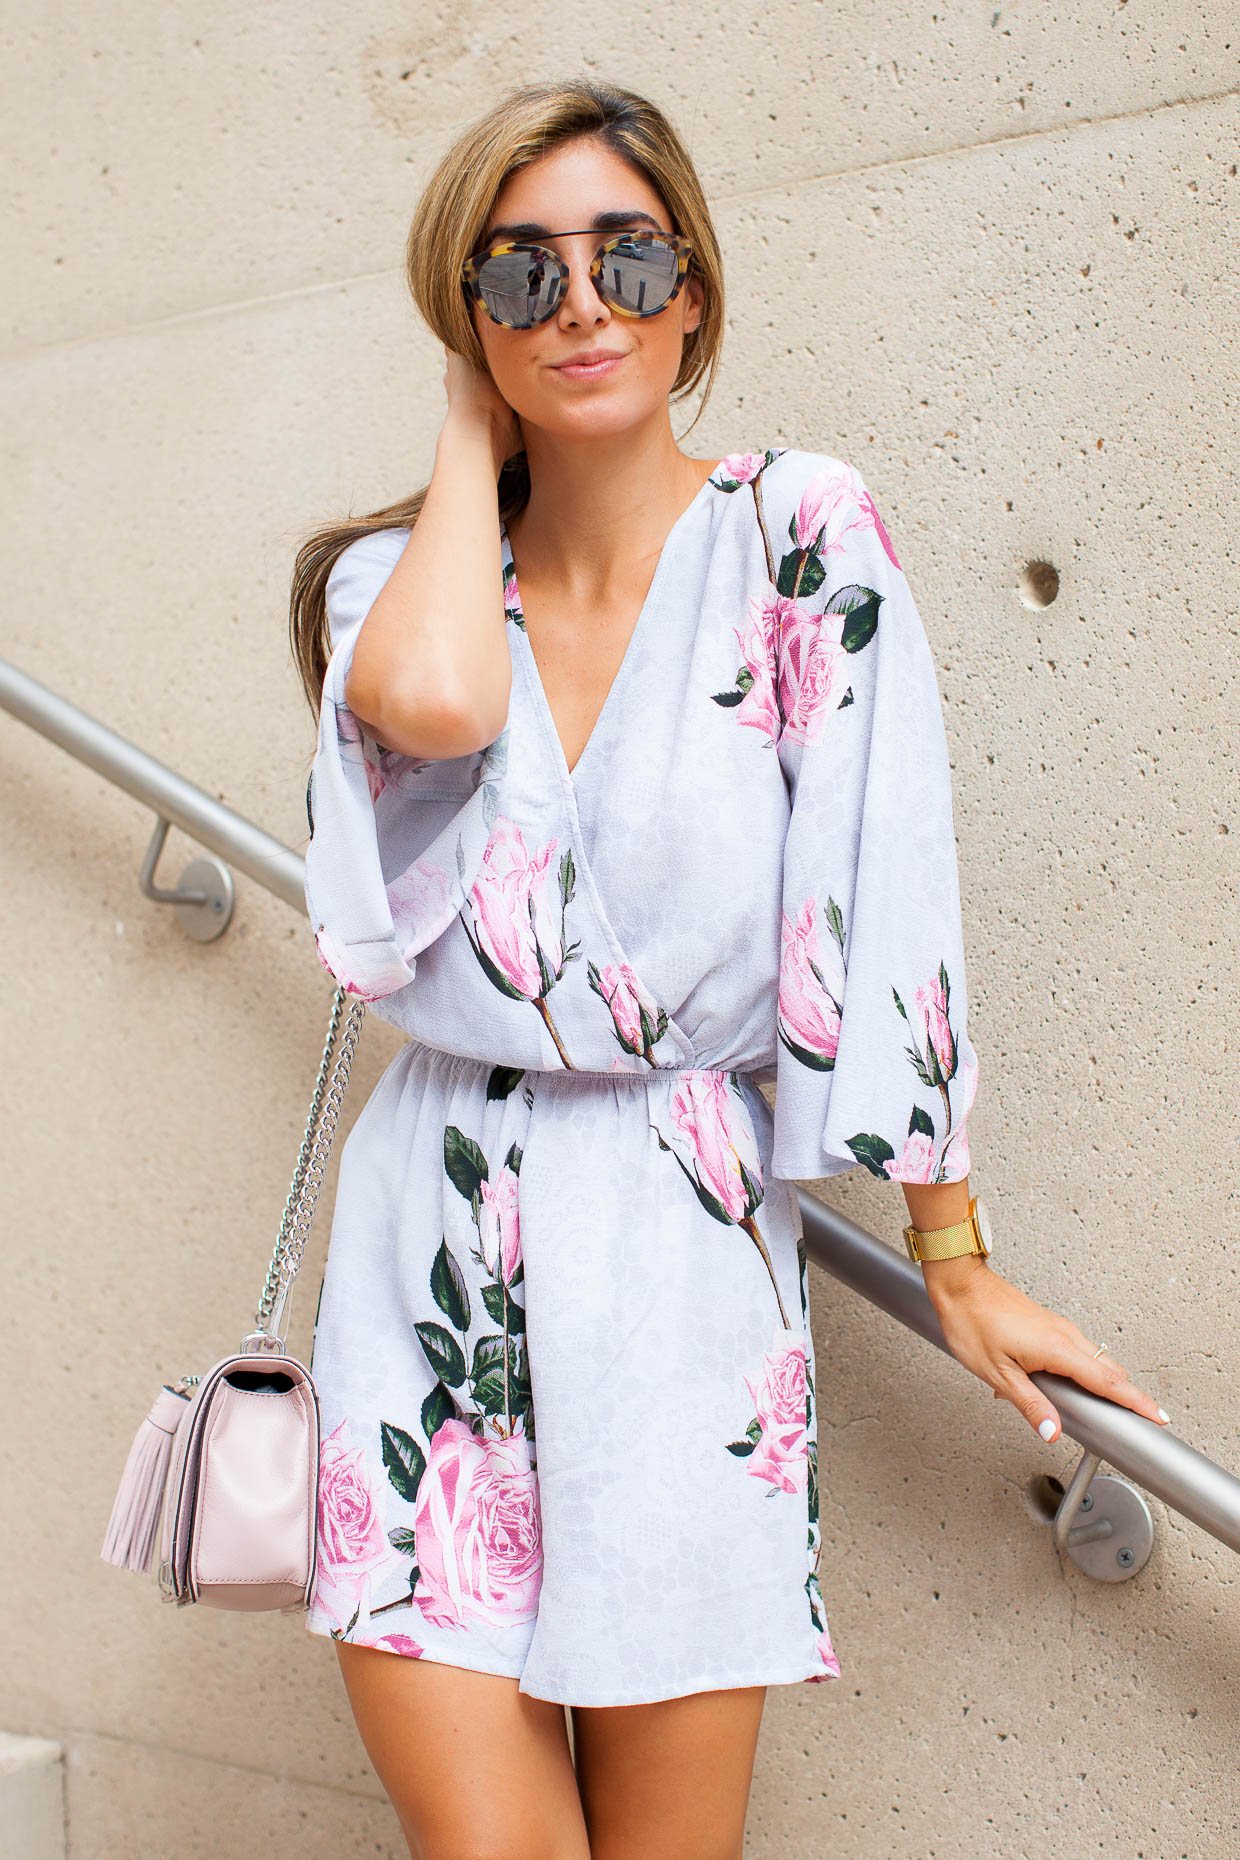 The Darling Detail is wearing a Glamorous Floral Lace Kimono Romper, Westward Leaning Flower 1 Sunglasses, a Larsson & Jennings 'Lugano' Mesh Strap Watch, and is carrying a Rebecca Minkoff 'Love' Crossbody Bag.